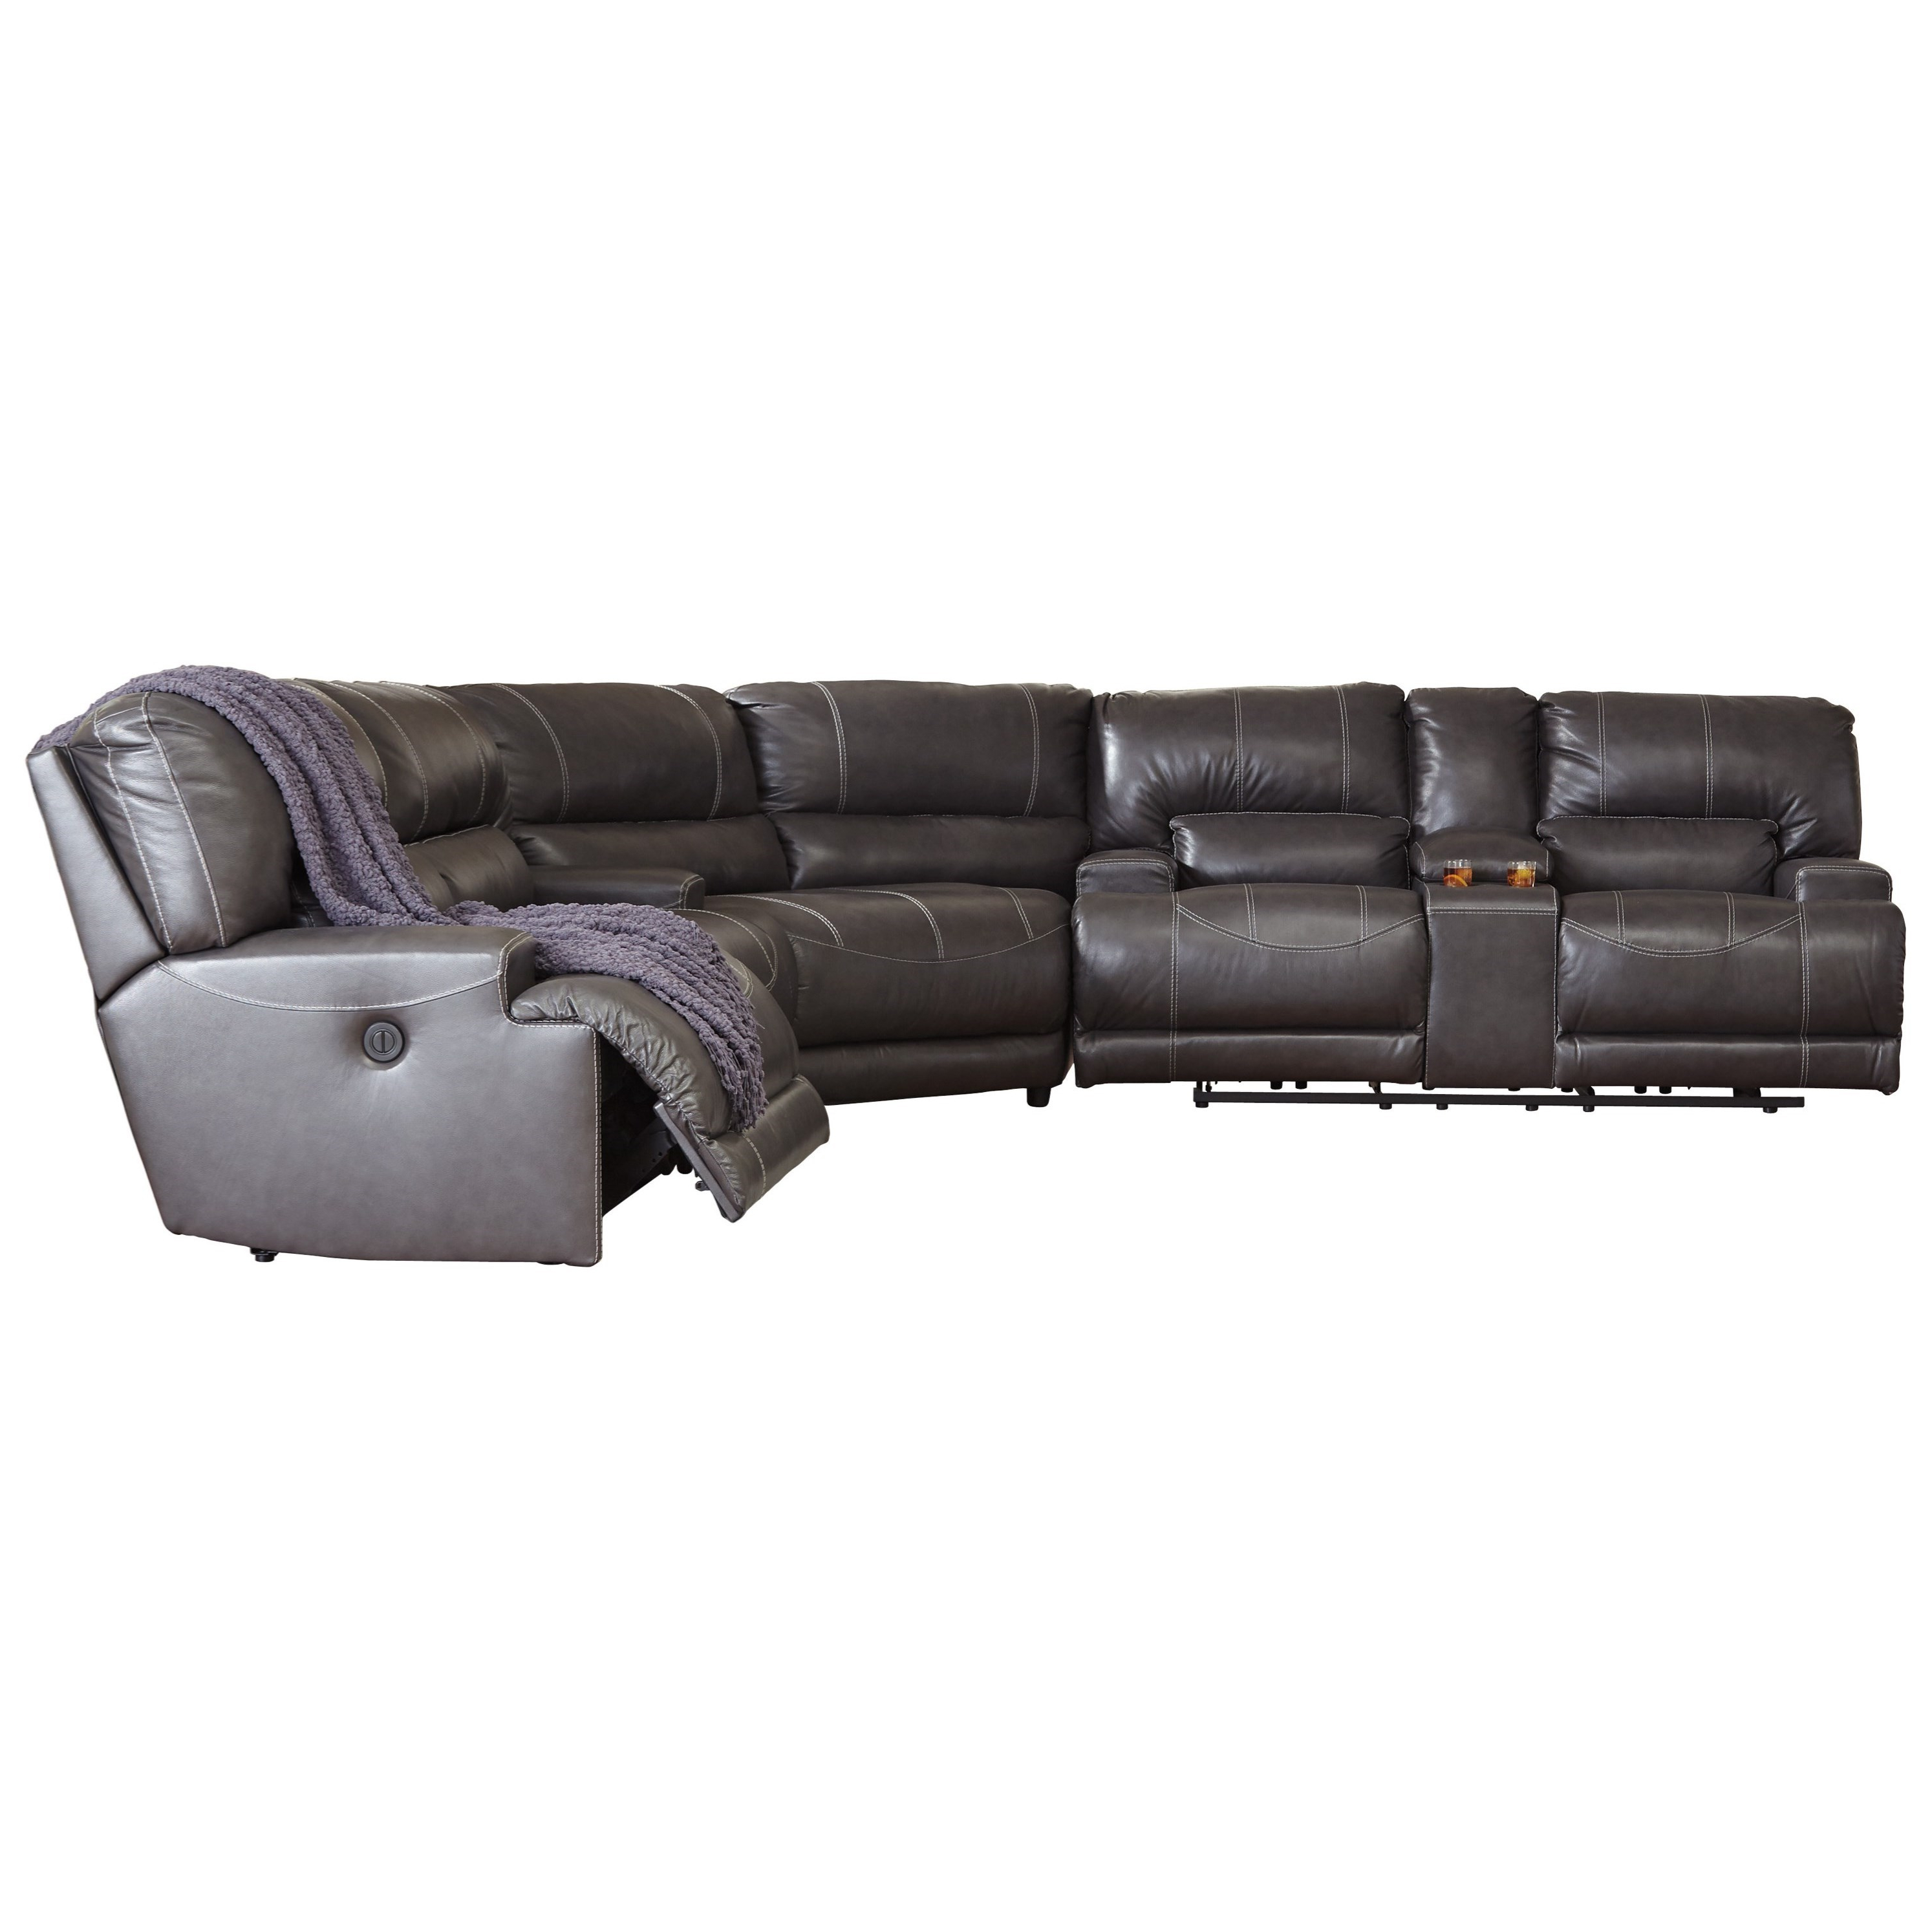 Reclining Sectional Sofas Jackson Pearl Madison Ridgeland Products Pertaining To Current Jackson 6 Piece Power Reclining Sectionals (View 15 of 20)